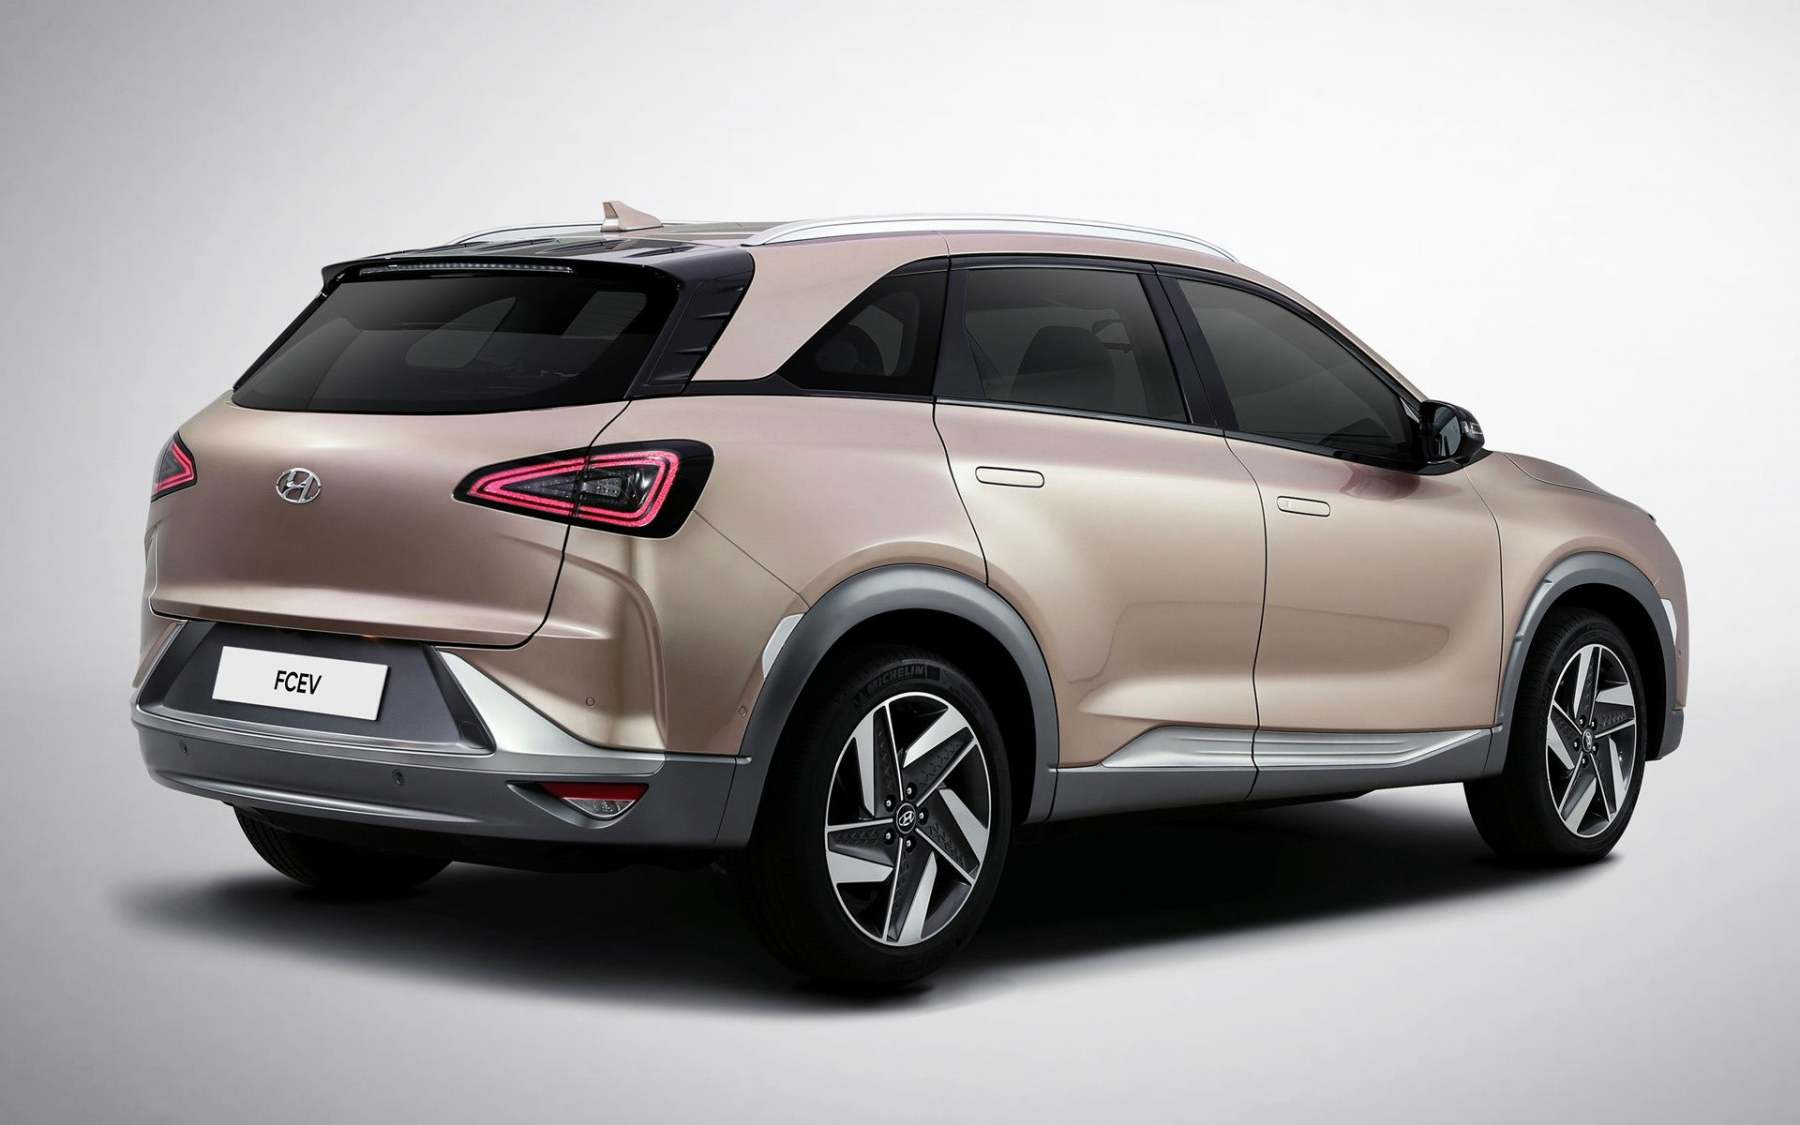 Hyundai Nexo Wallpapers YL Computing 1800x1125